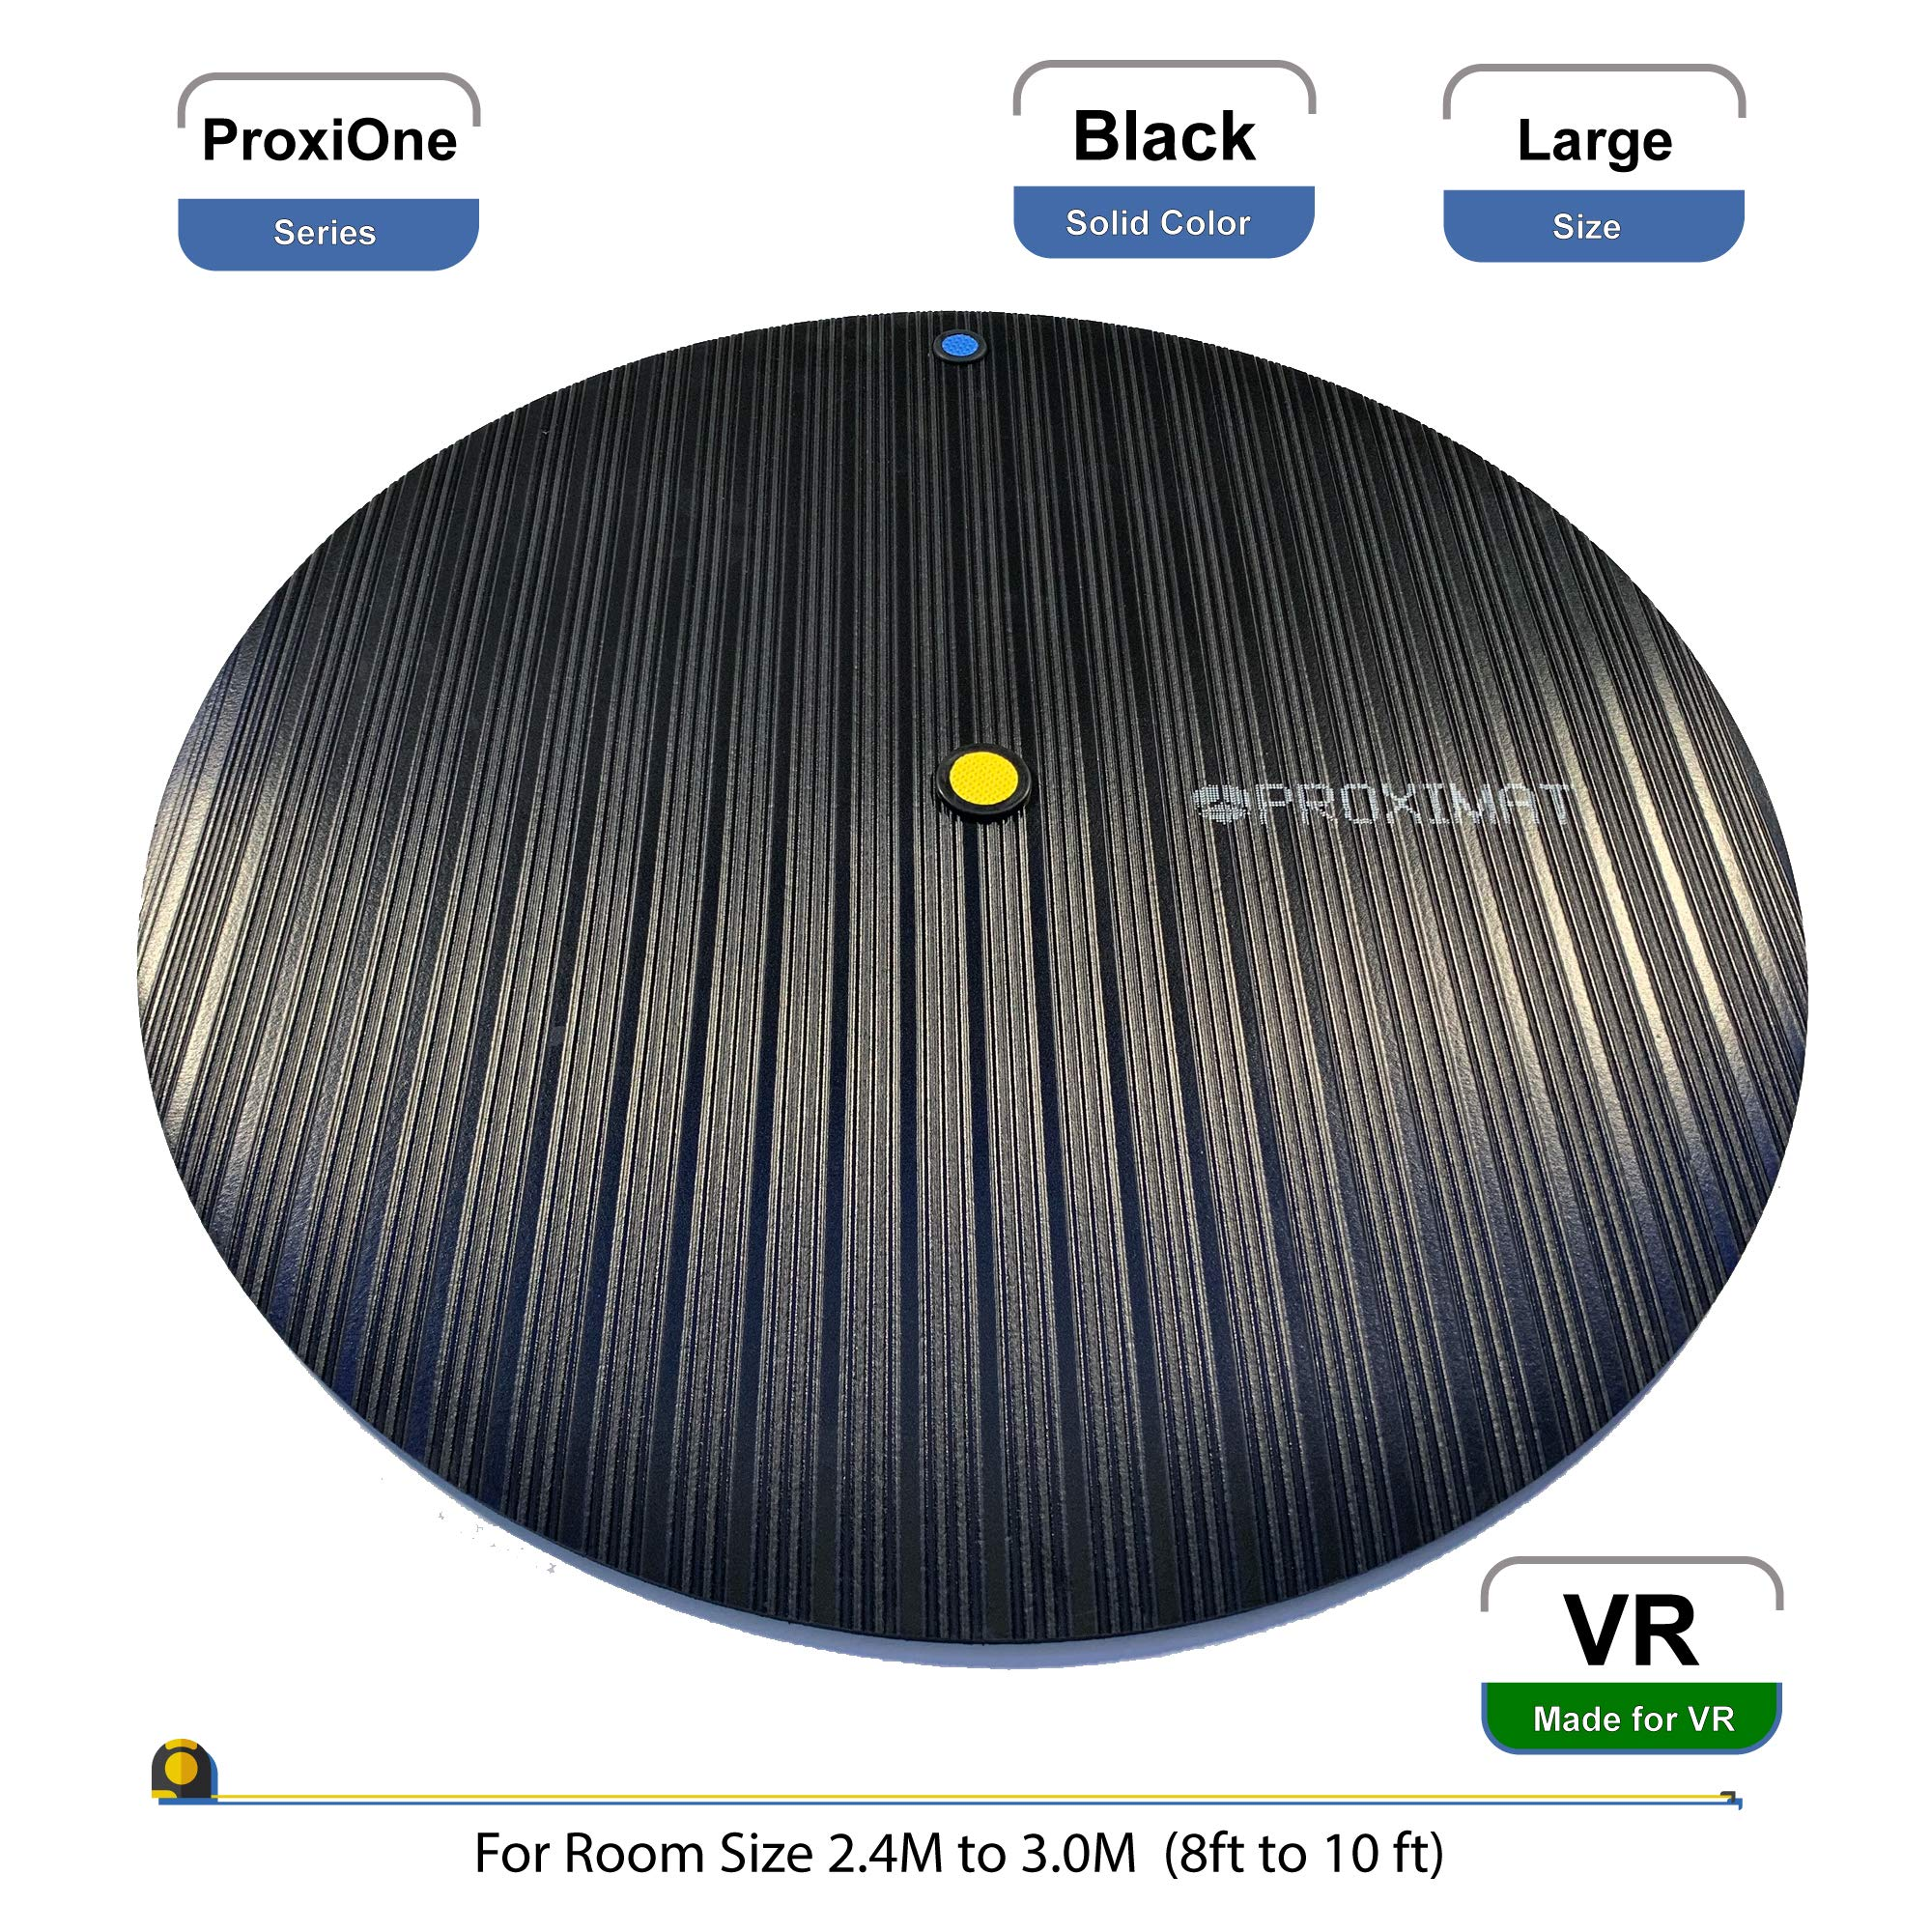 ProxiMat   ProxiOne   Black   Large   VR Virtual Reality Chaperone Safety Mat   8' to 10' Room Scale   For HTC Vive, Oculus Rift Quest, Playstation PSVR, Pimax 5K 8K, Valve Index Headset